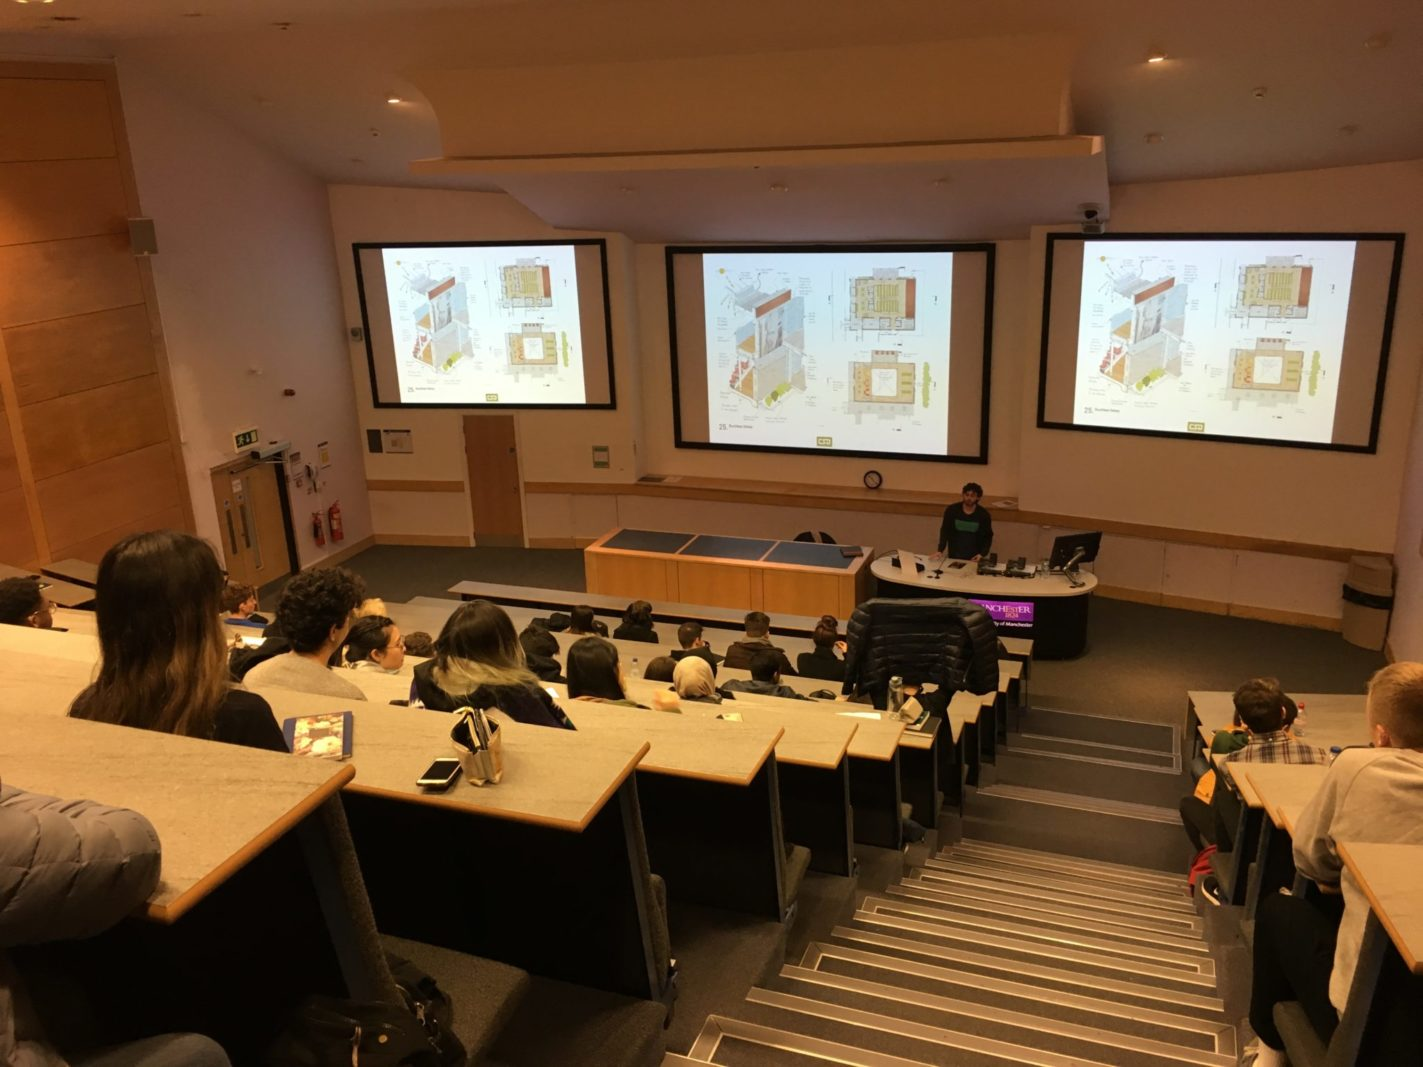 Rud Presents lecture at Manchester University School of Architecture – Rud Sawers Architects, Devon